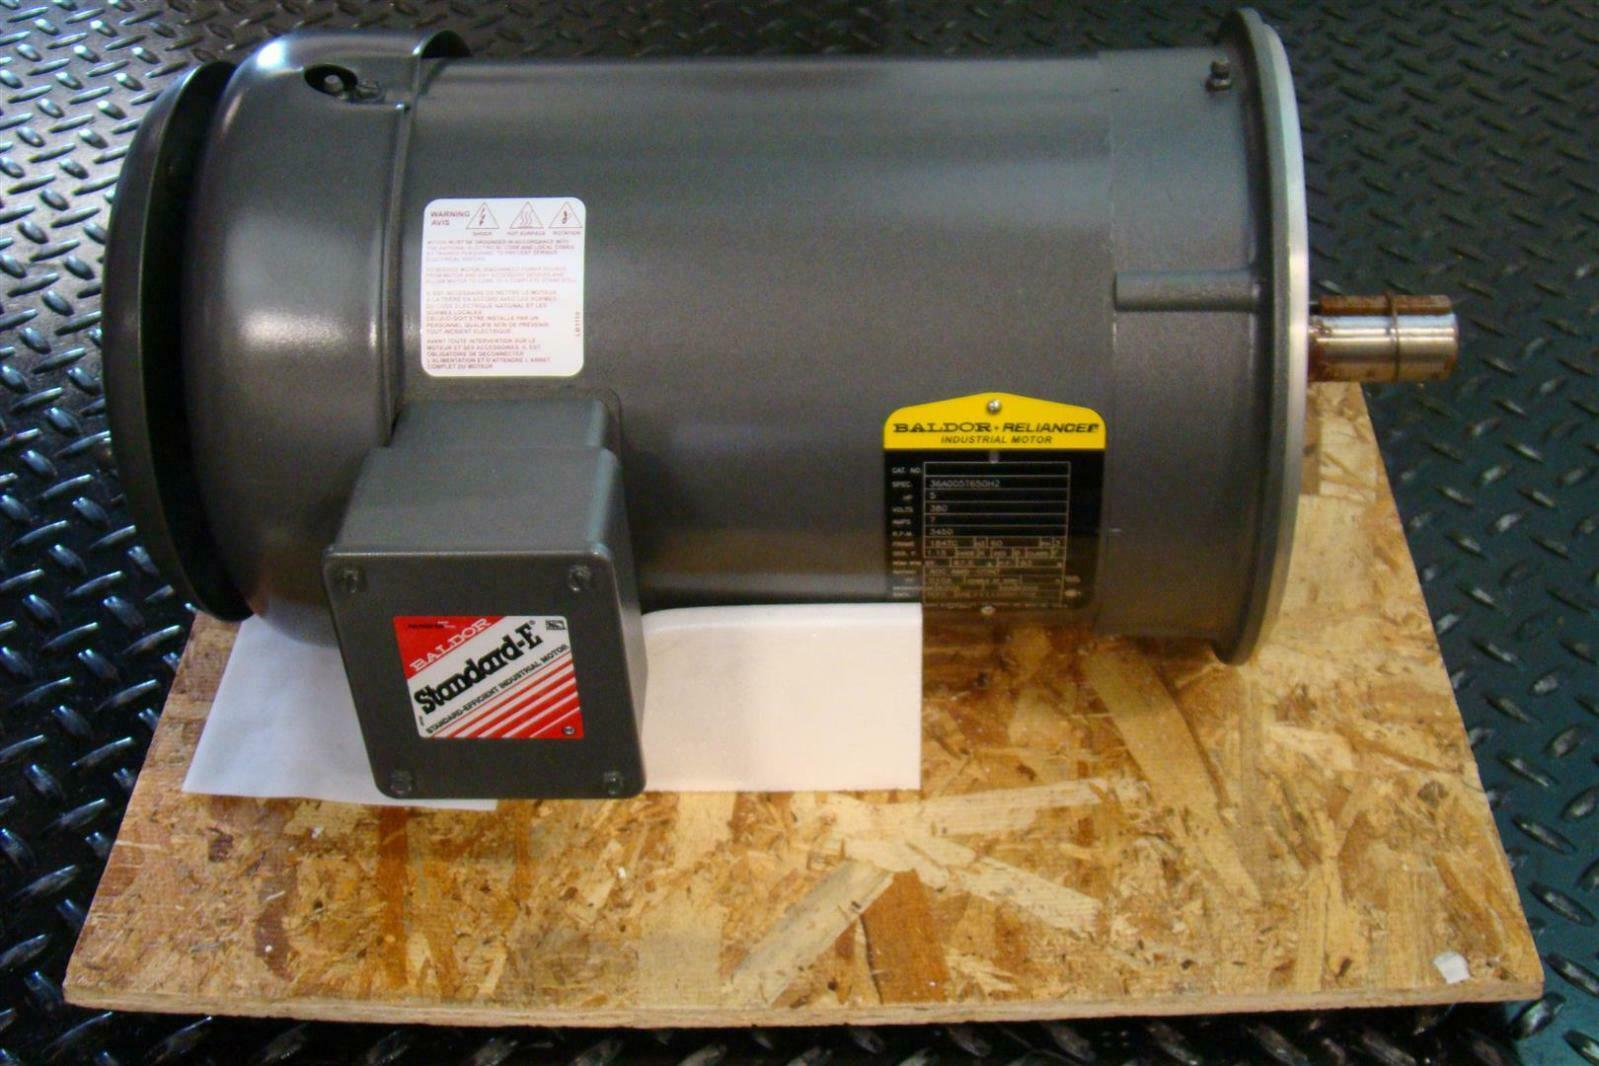 Baldor Reliancer Electric Motor 5hp 3450rpm 380v